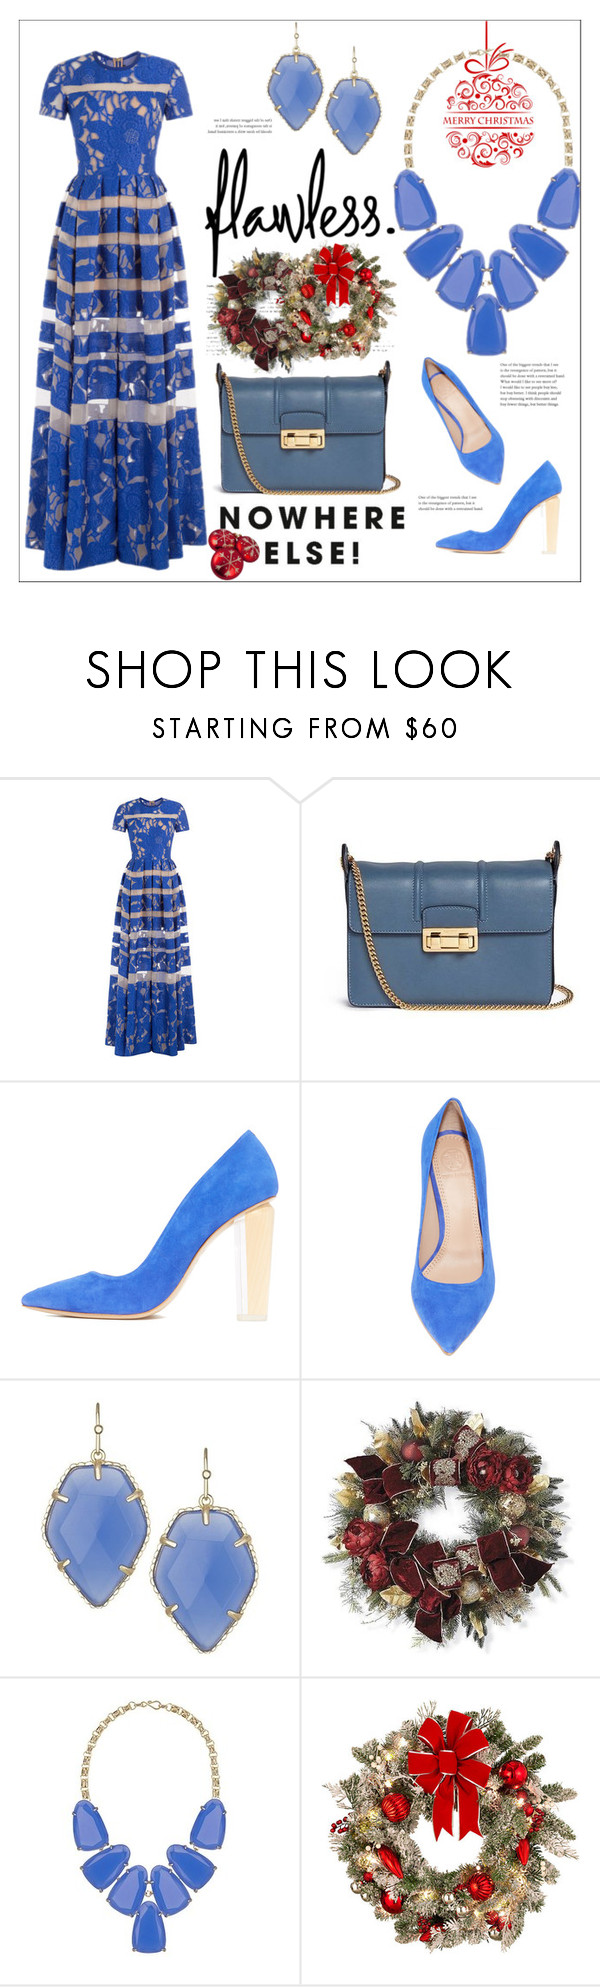 """""""Christmas Gift Guide"""" by bonnielindsay ❤ liked on Polyvore featuring Elie Saab, Lanvin, Kendra Scott, Frontgate and Improvements"""